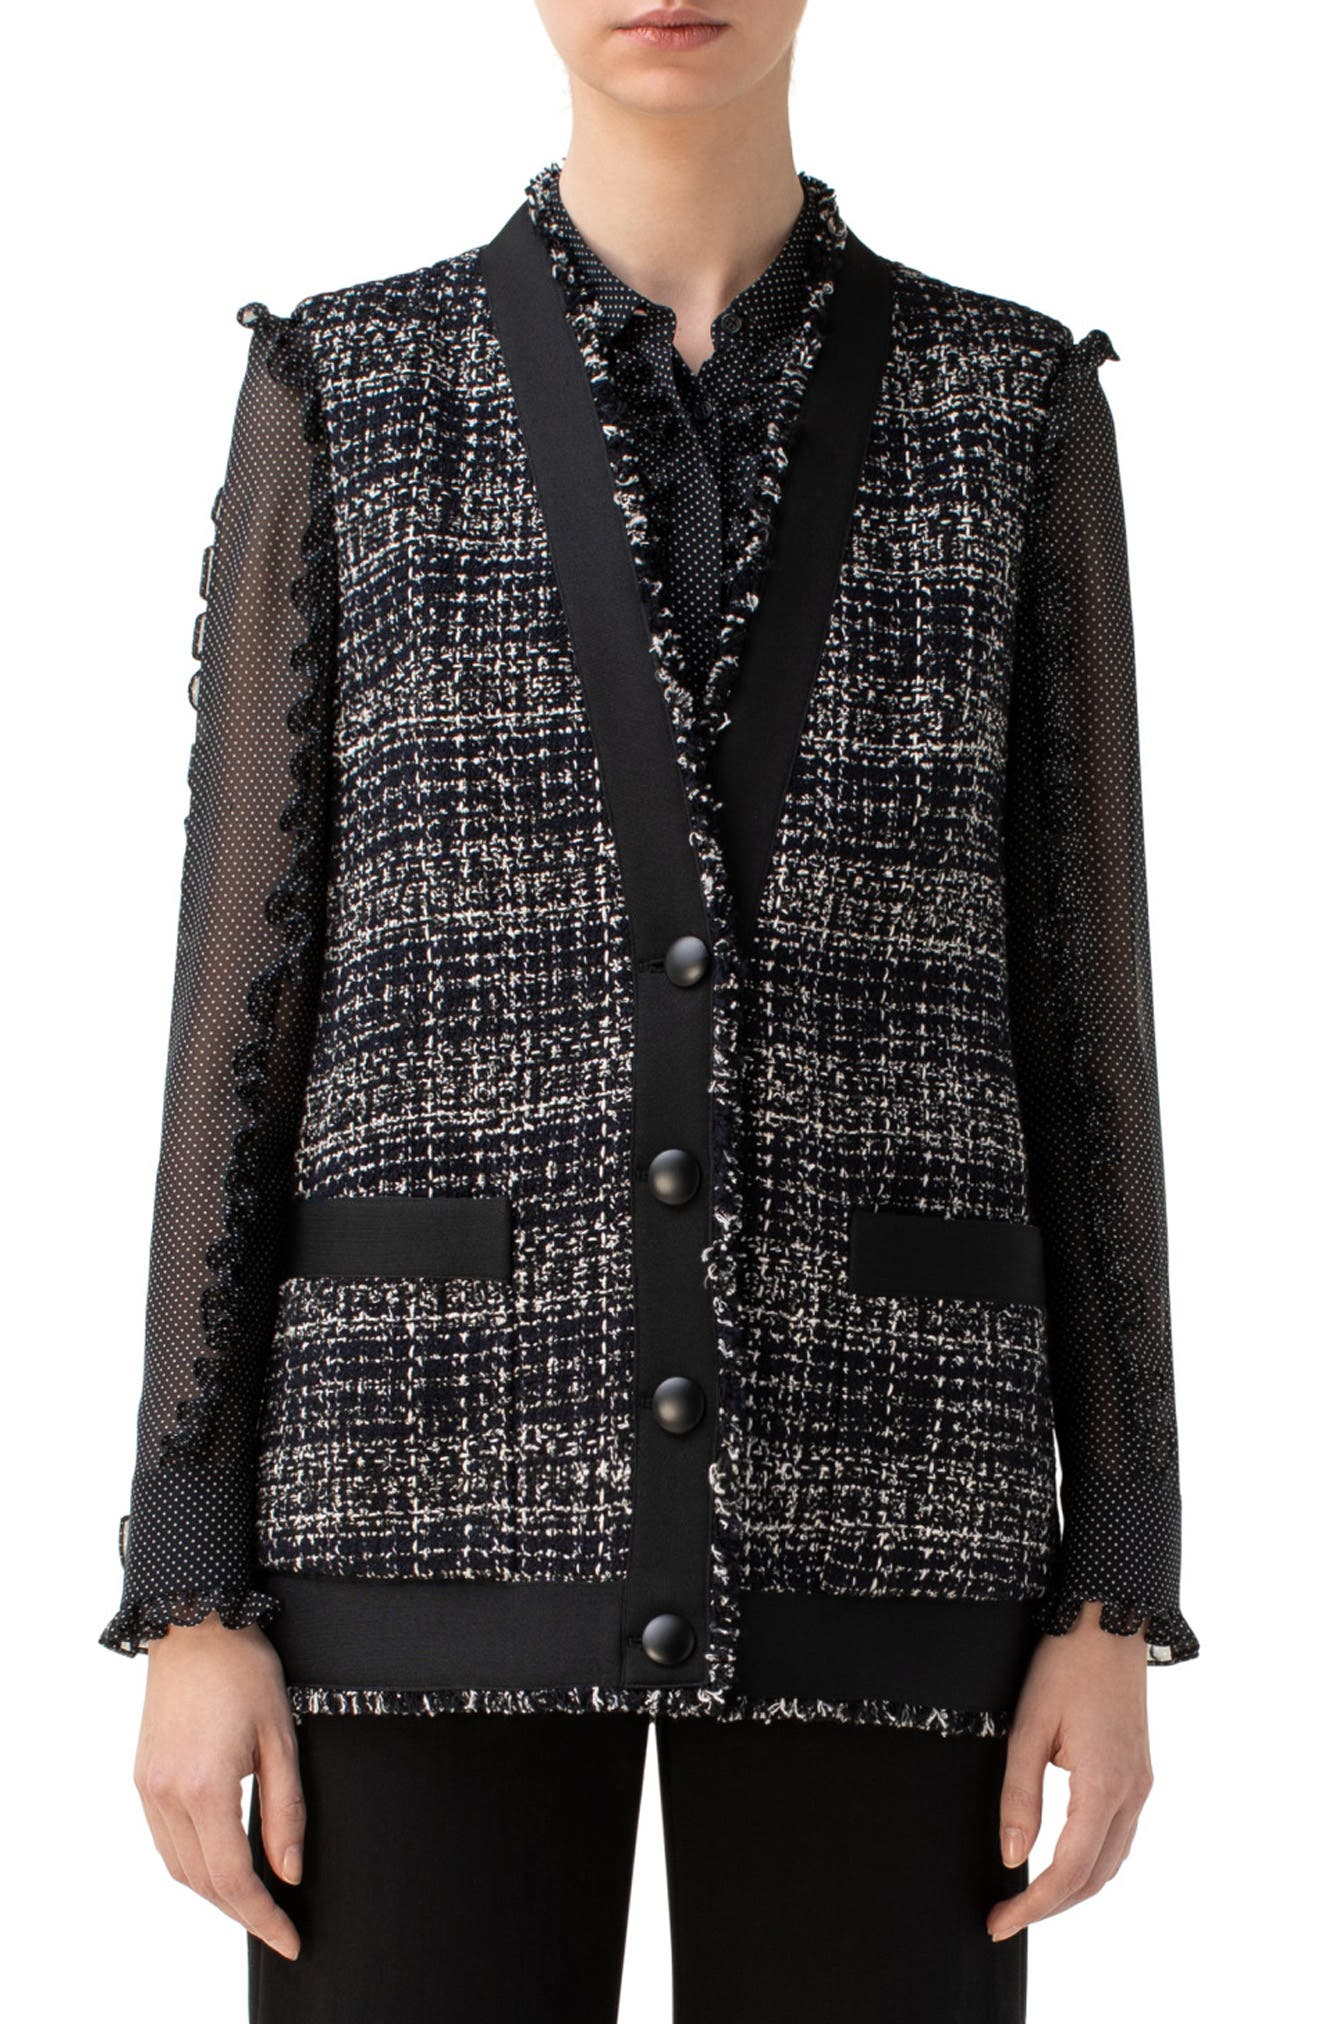 Fringed trim, solid black accents and smooth buttons enhance the textural dimension of this Italian cotton-blend tweed vest. Style Name: Akris Punto Tweed Vest. Style Number: 5999710. Available in stores.